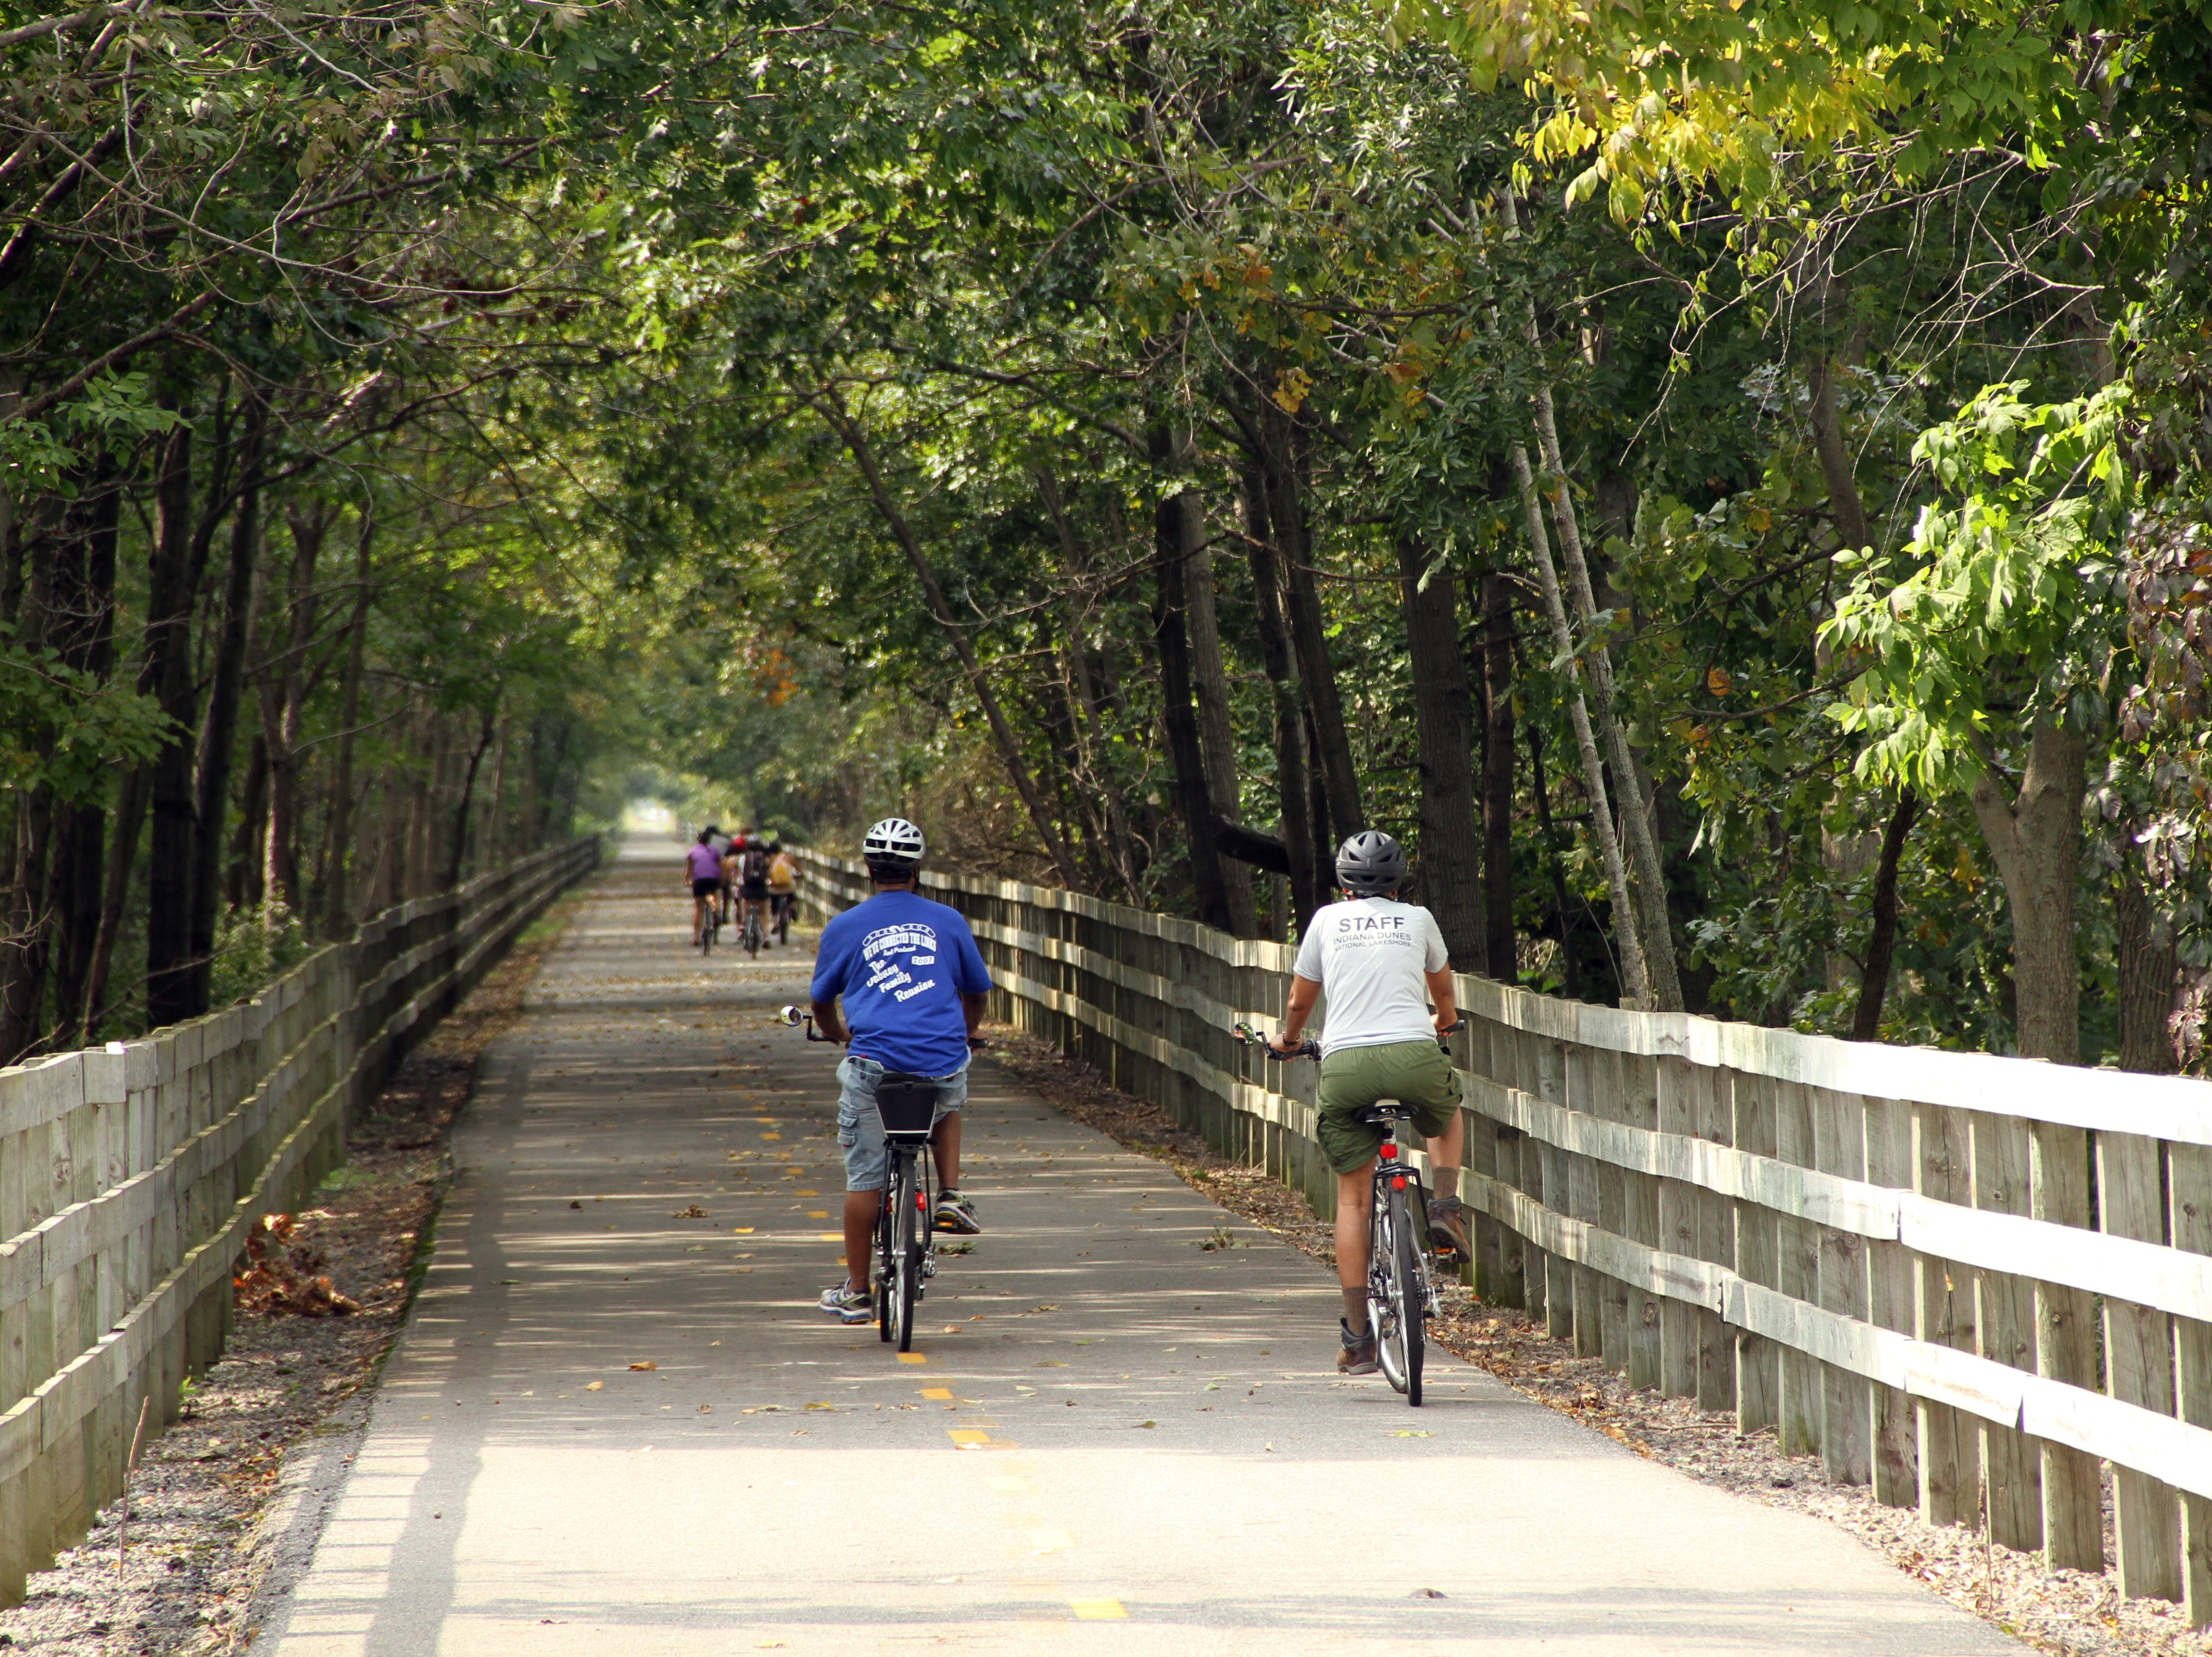 Bicyclists ride on the Oak Savannah paved rail trail at Indiana Dunes National Park.